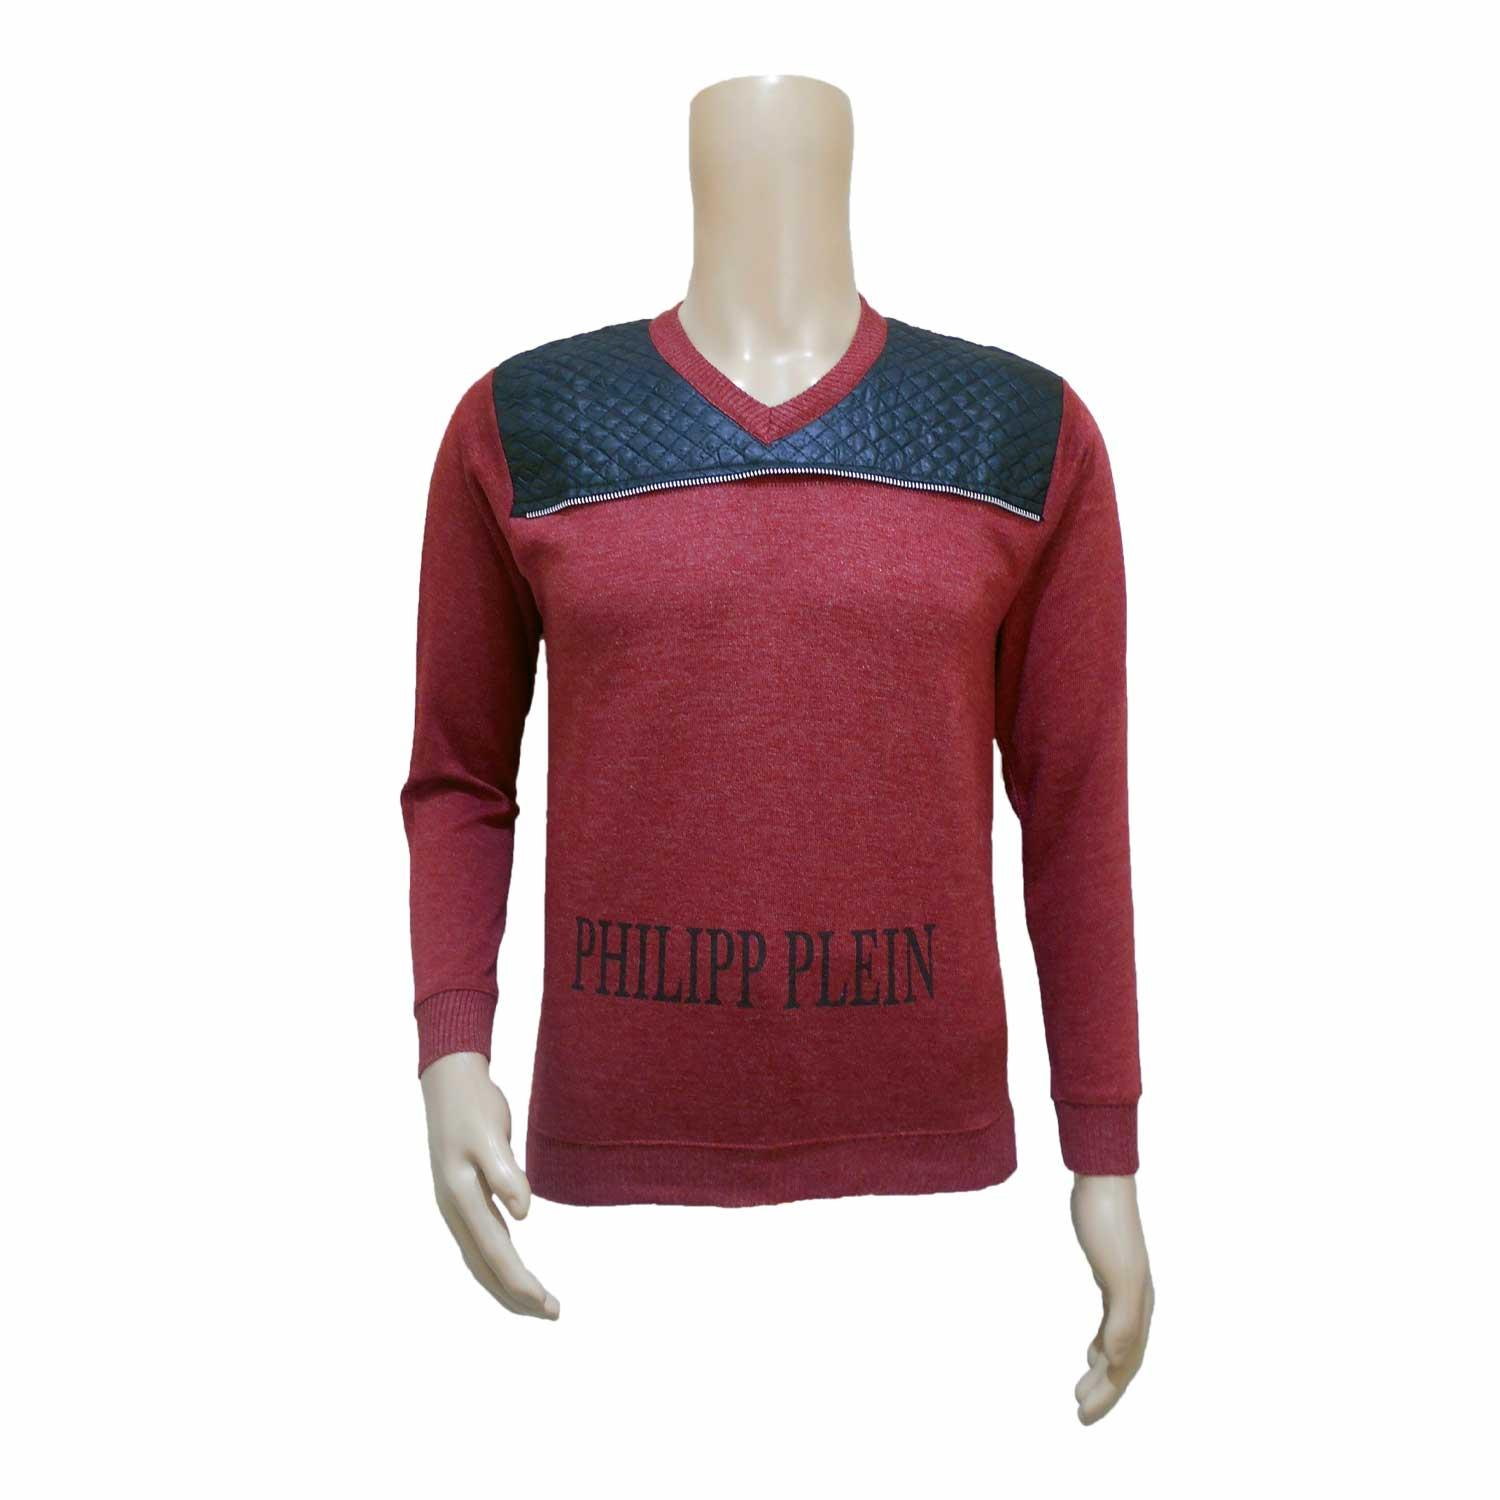 MEN'S SWEATER PHP P RED FREE SIZE